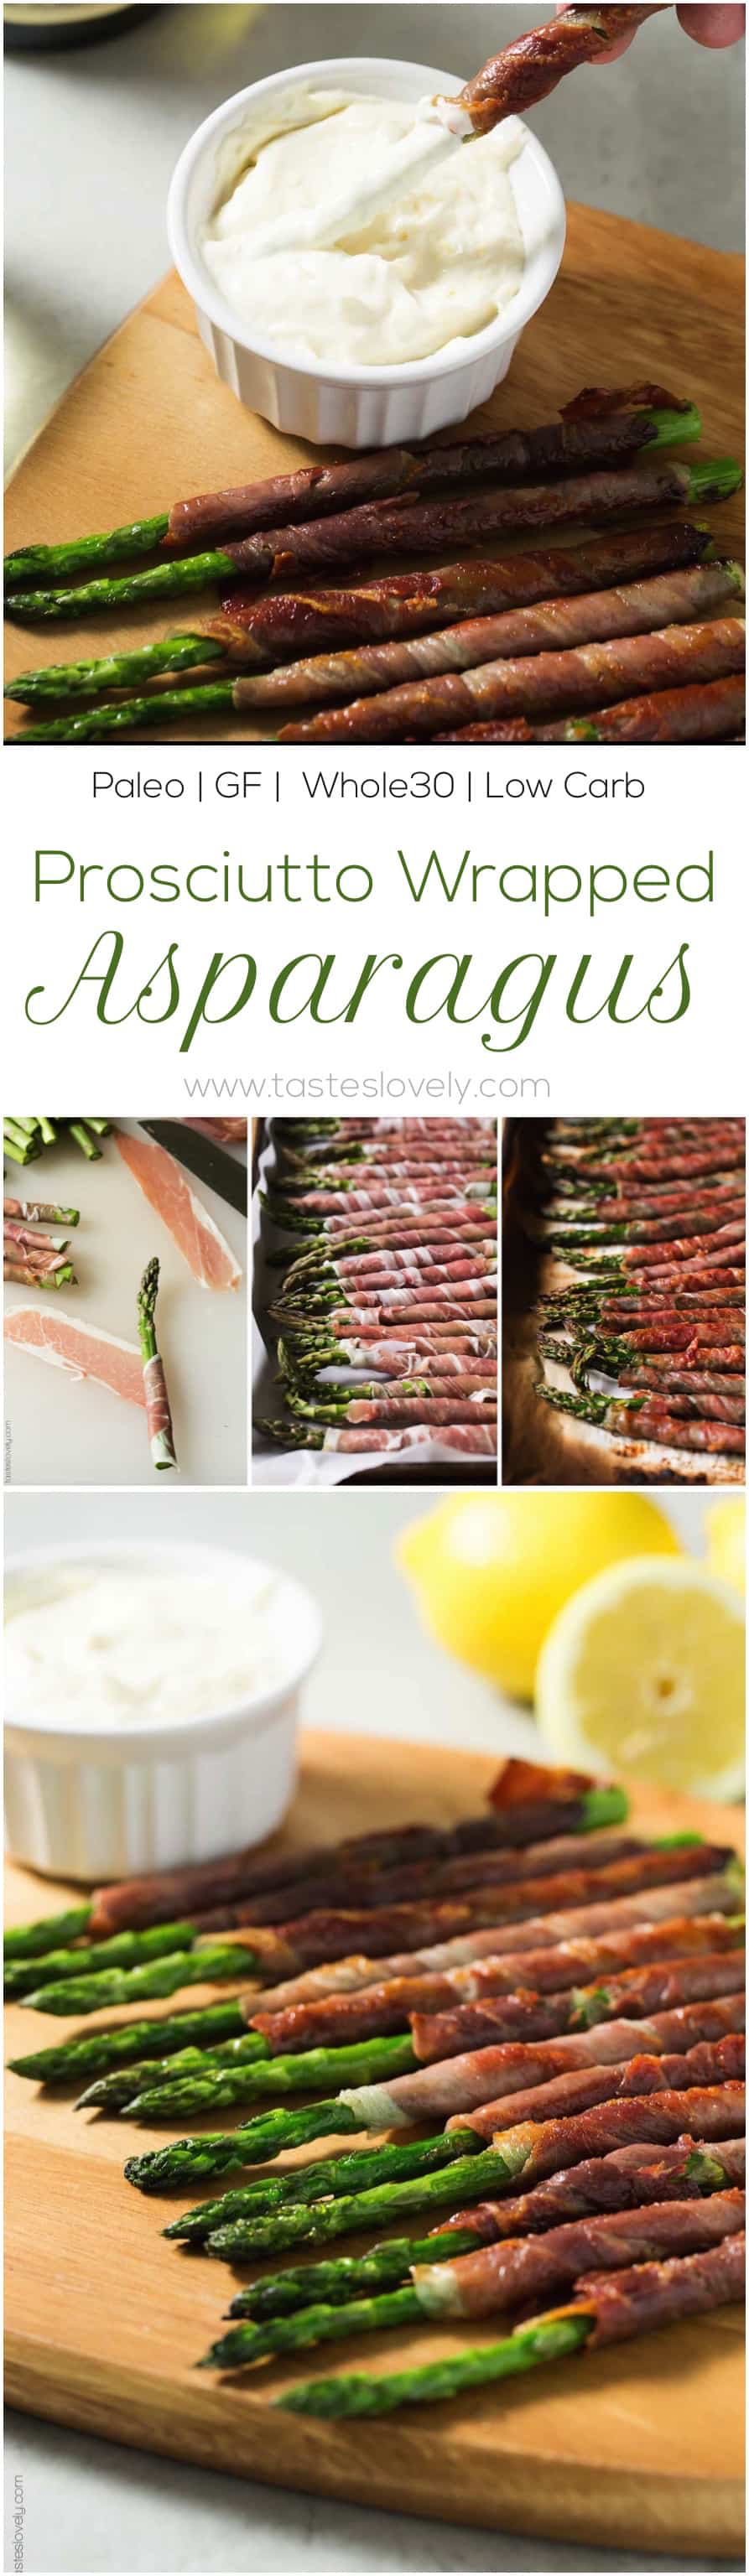 Paleo Prosciutto Wrapped Asparagus Appetizer With Lemon Garlic Aioli  (paleo, Gluten Free, Whole30